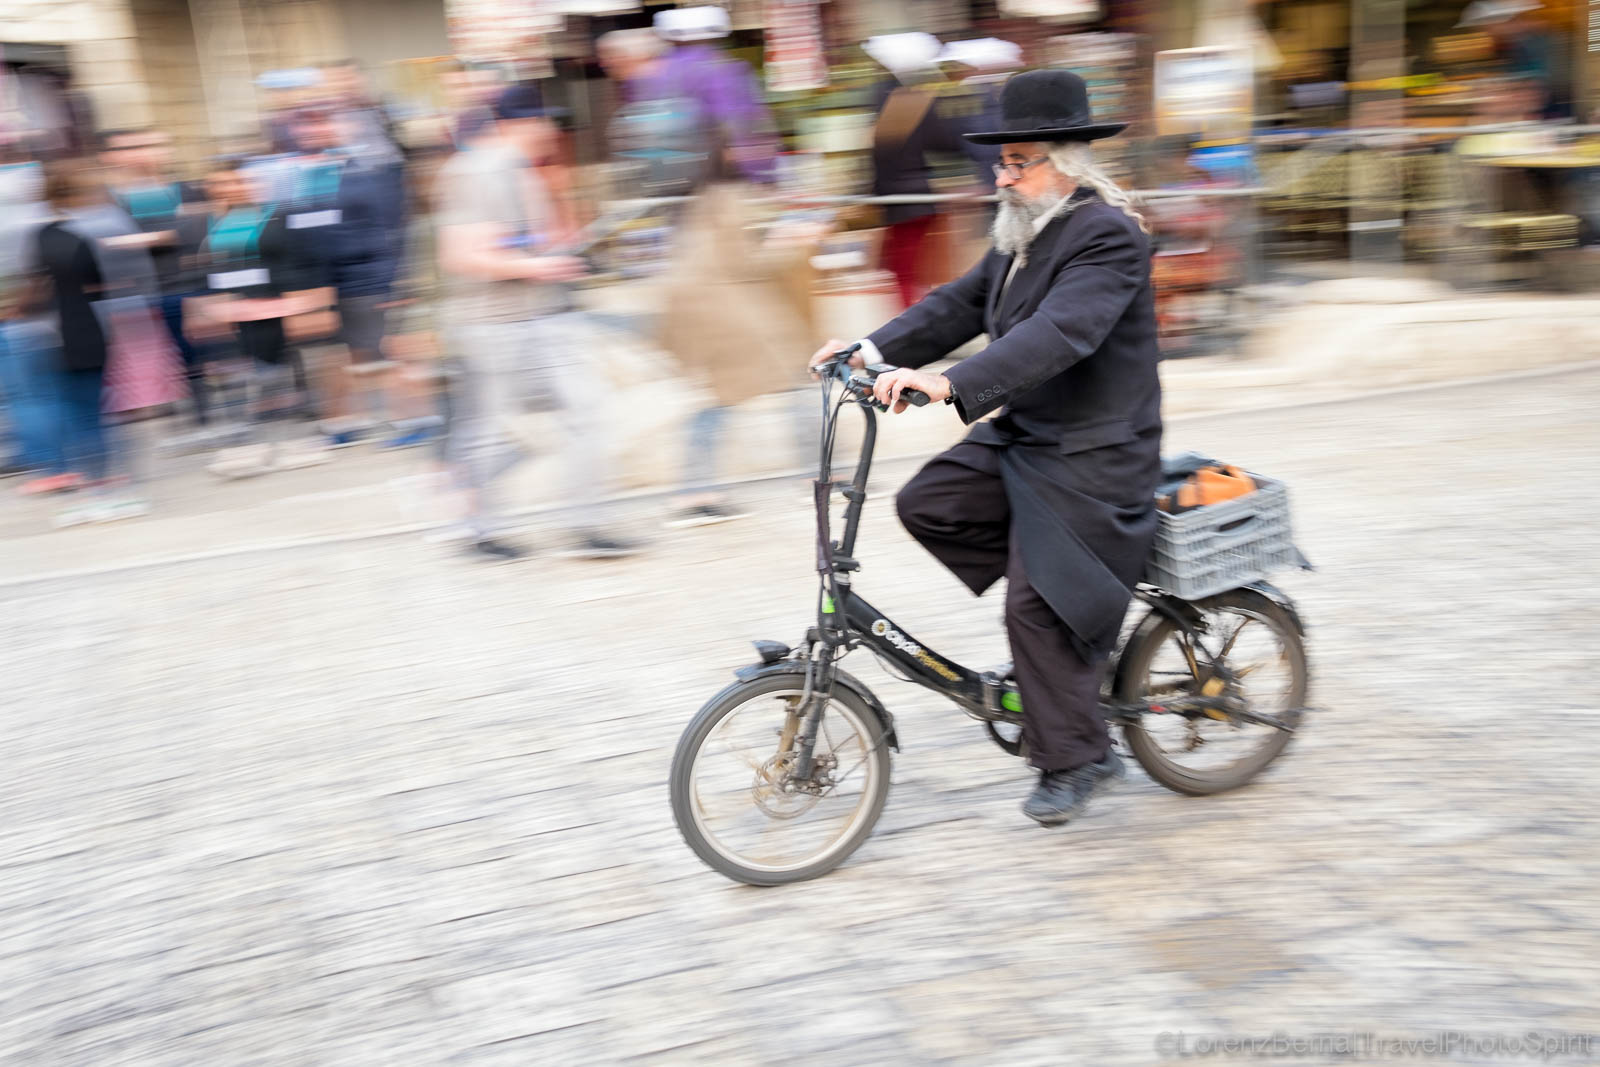 Old man on an electrical bike, in the Jewish Quarter of Jerusalem, Israel.